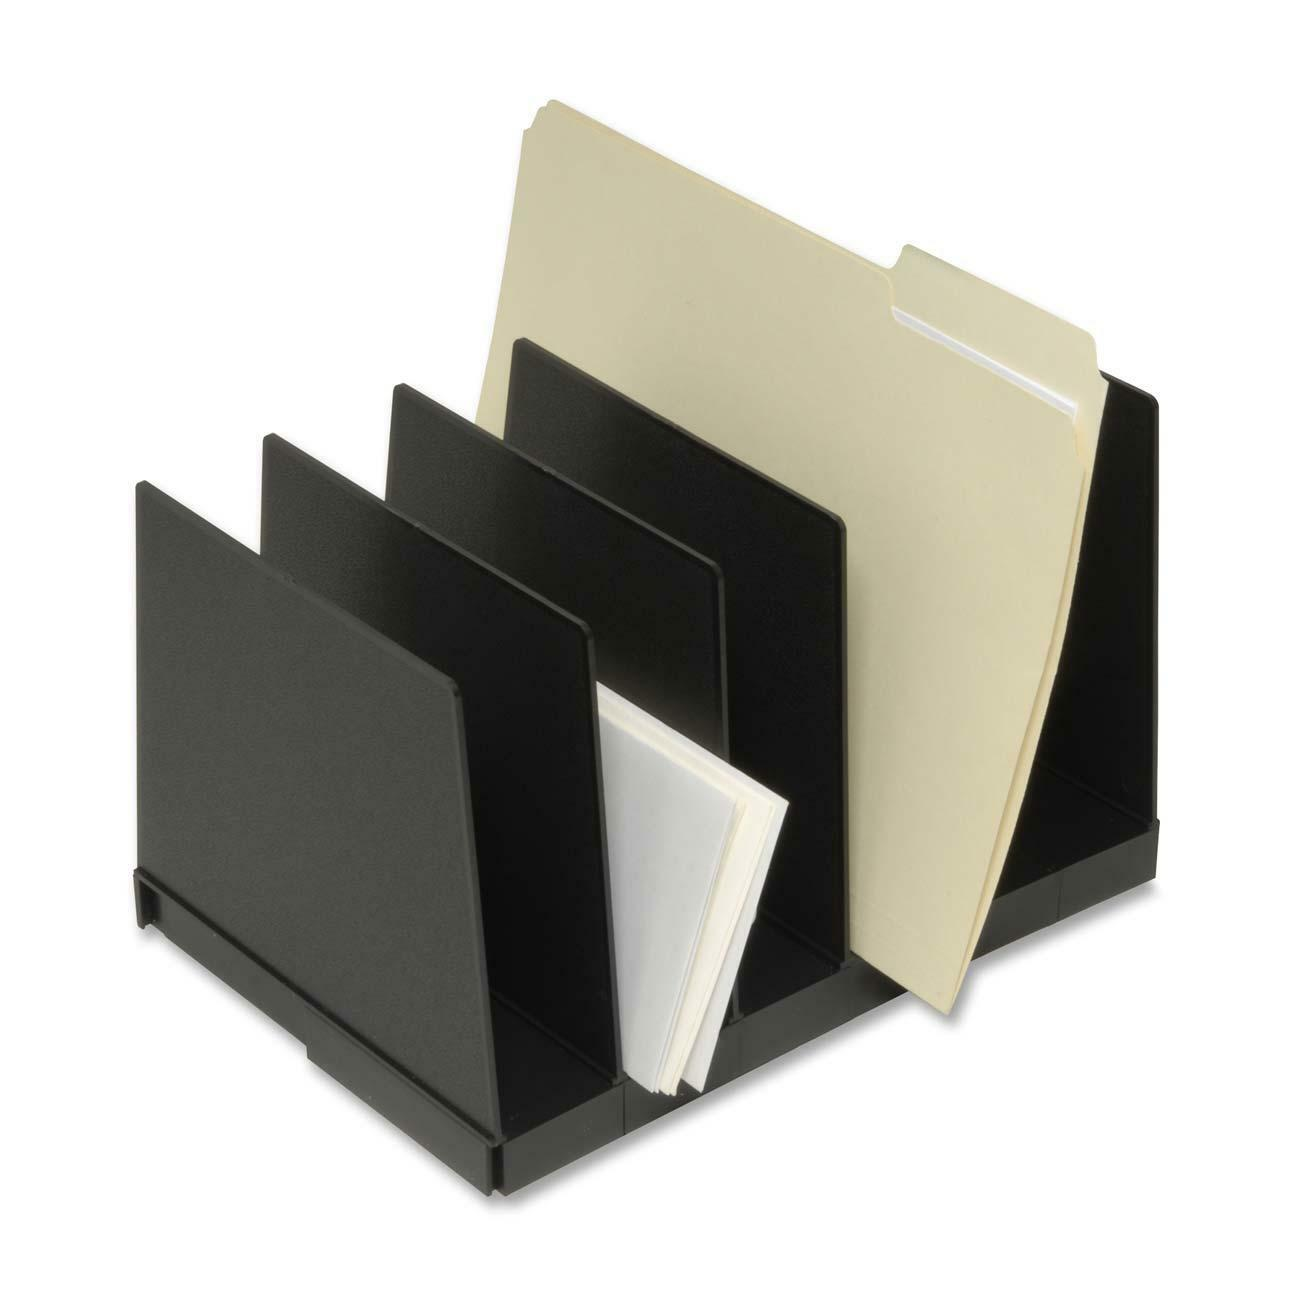 Expand A File Desktop Organizer Includes Six Sections For Vertical Filing Each 2 Wide Section Can Hold Quantity Of Files Papers Reports S